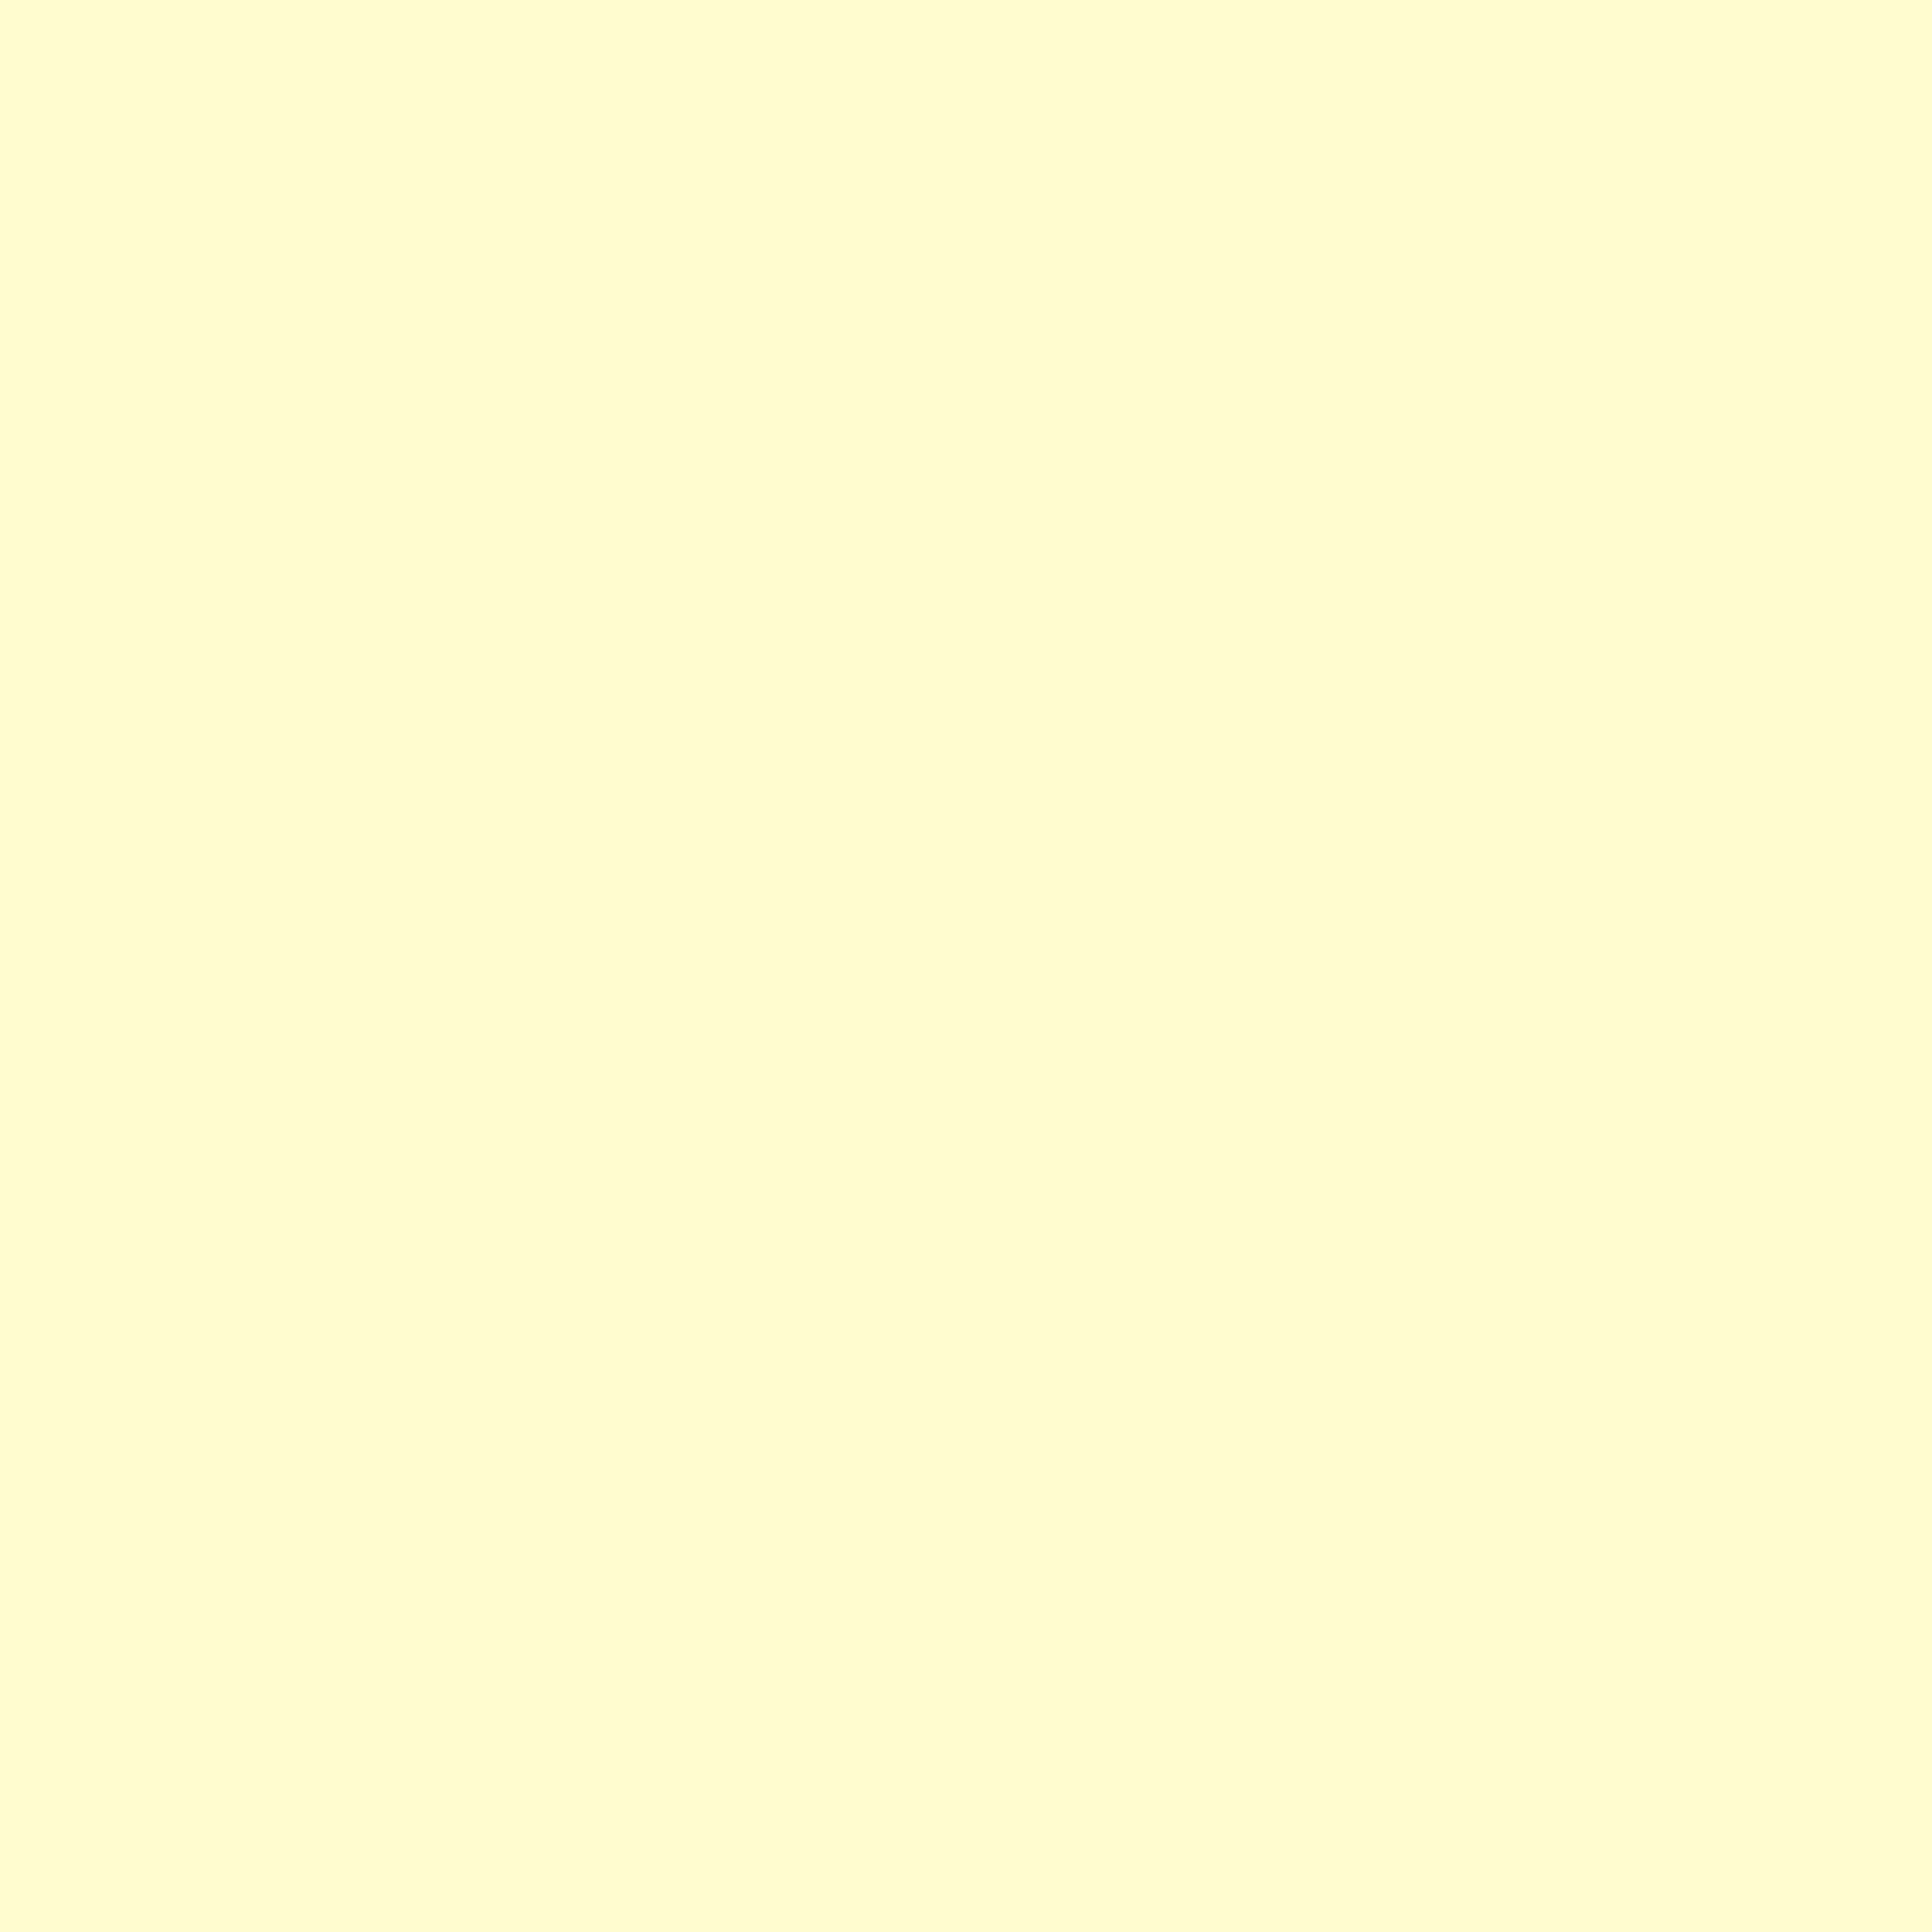 2048x2048 Cream Solid Color Background